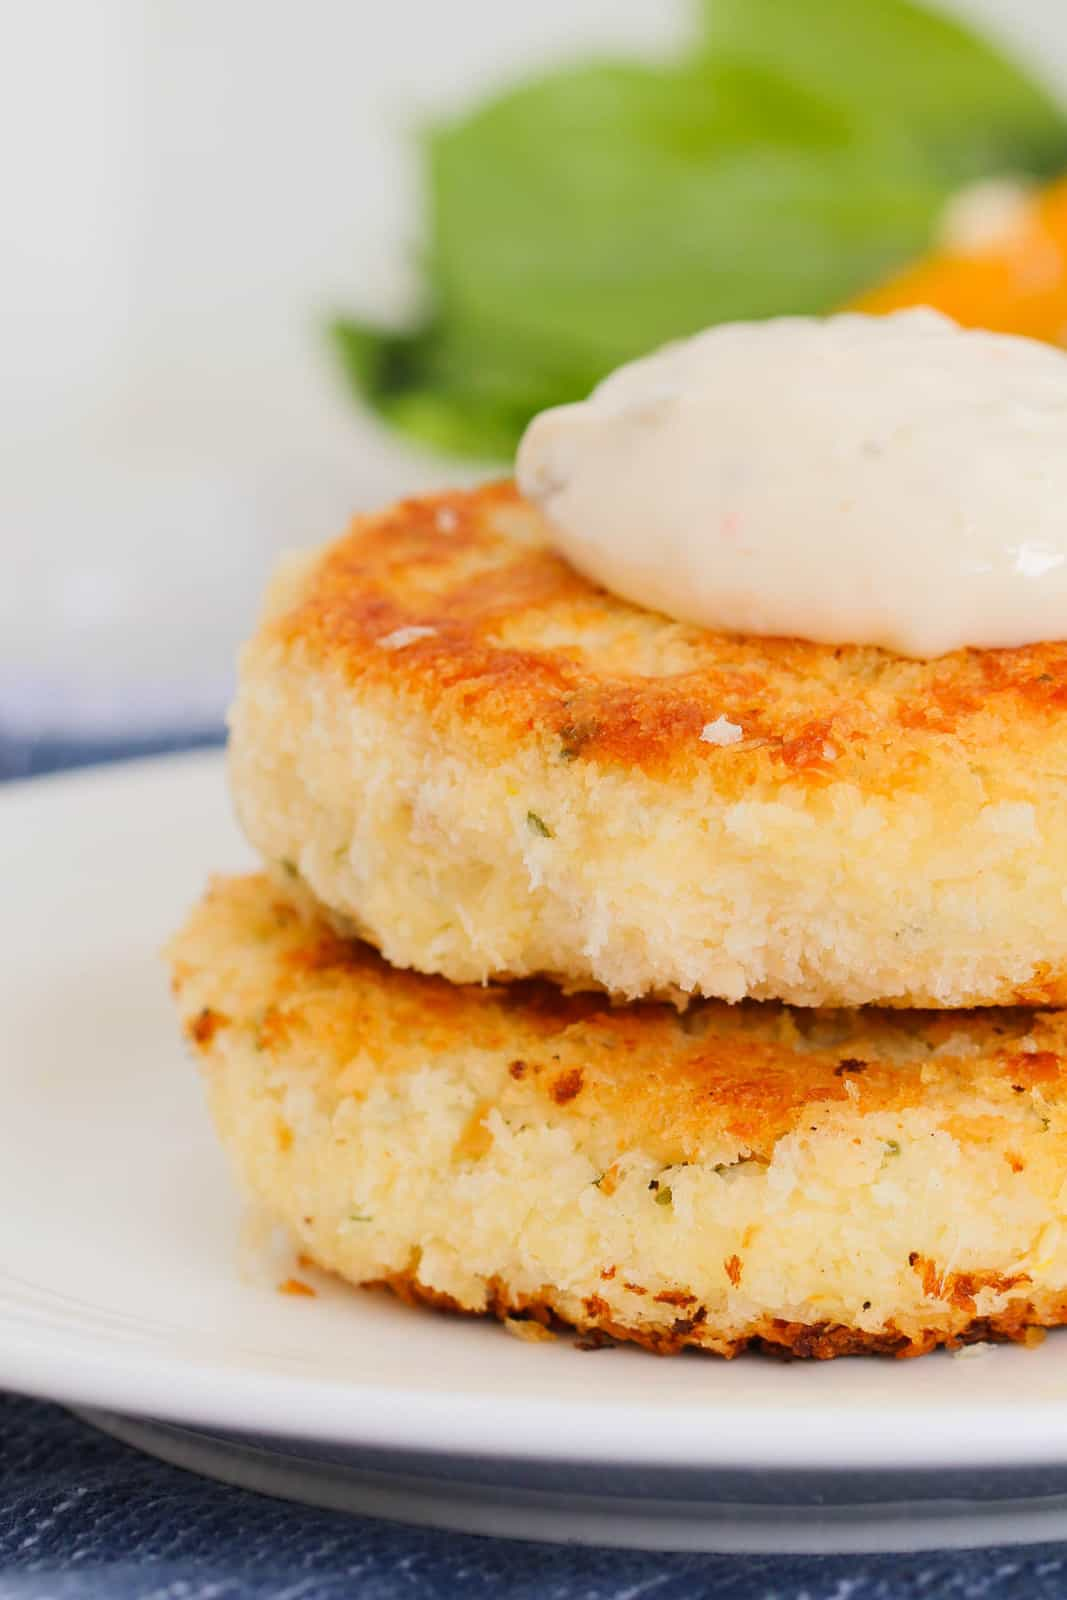 Two golden pan-fried fish cakes on a plate topped with a spoonful of tartare sauce.